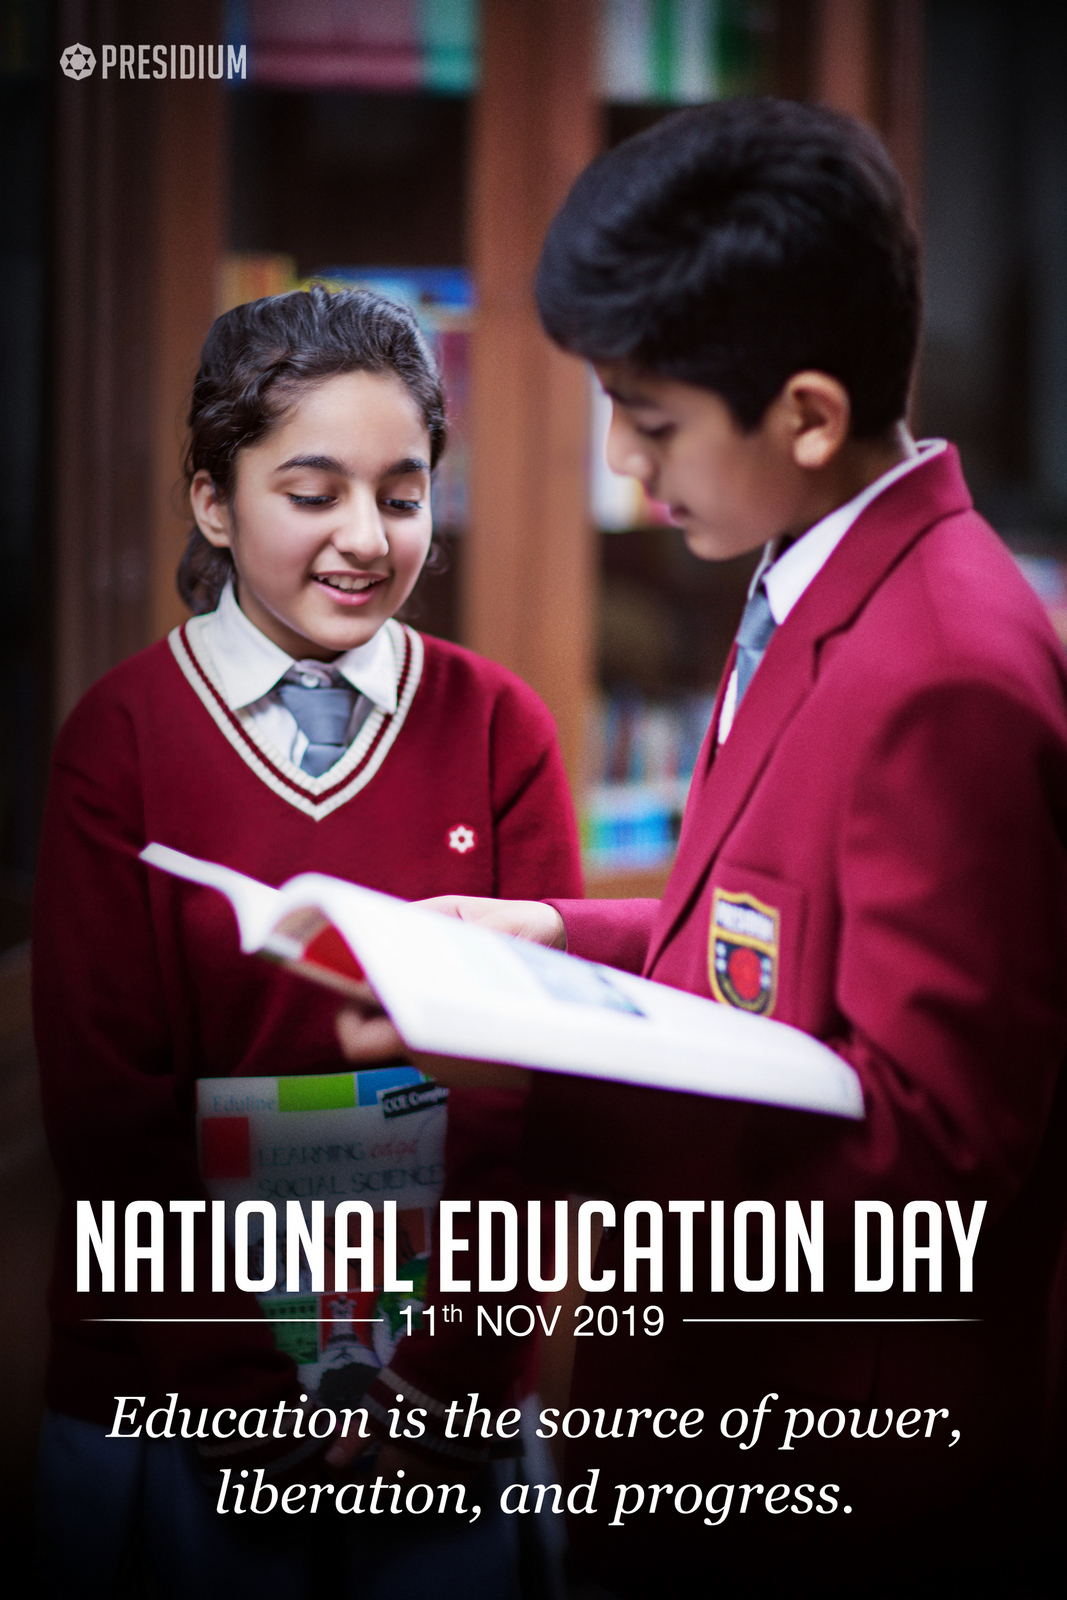 NATIONAL EDUCATION DAY: EDUCATION IS THE PREMISES OF PROGRESS